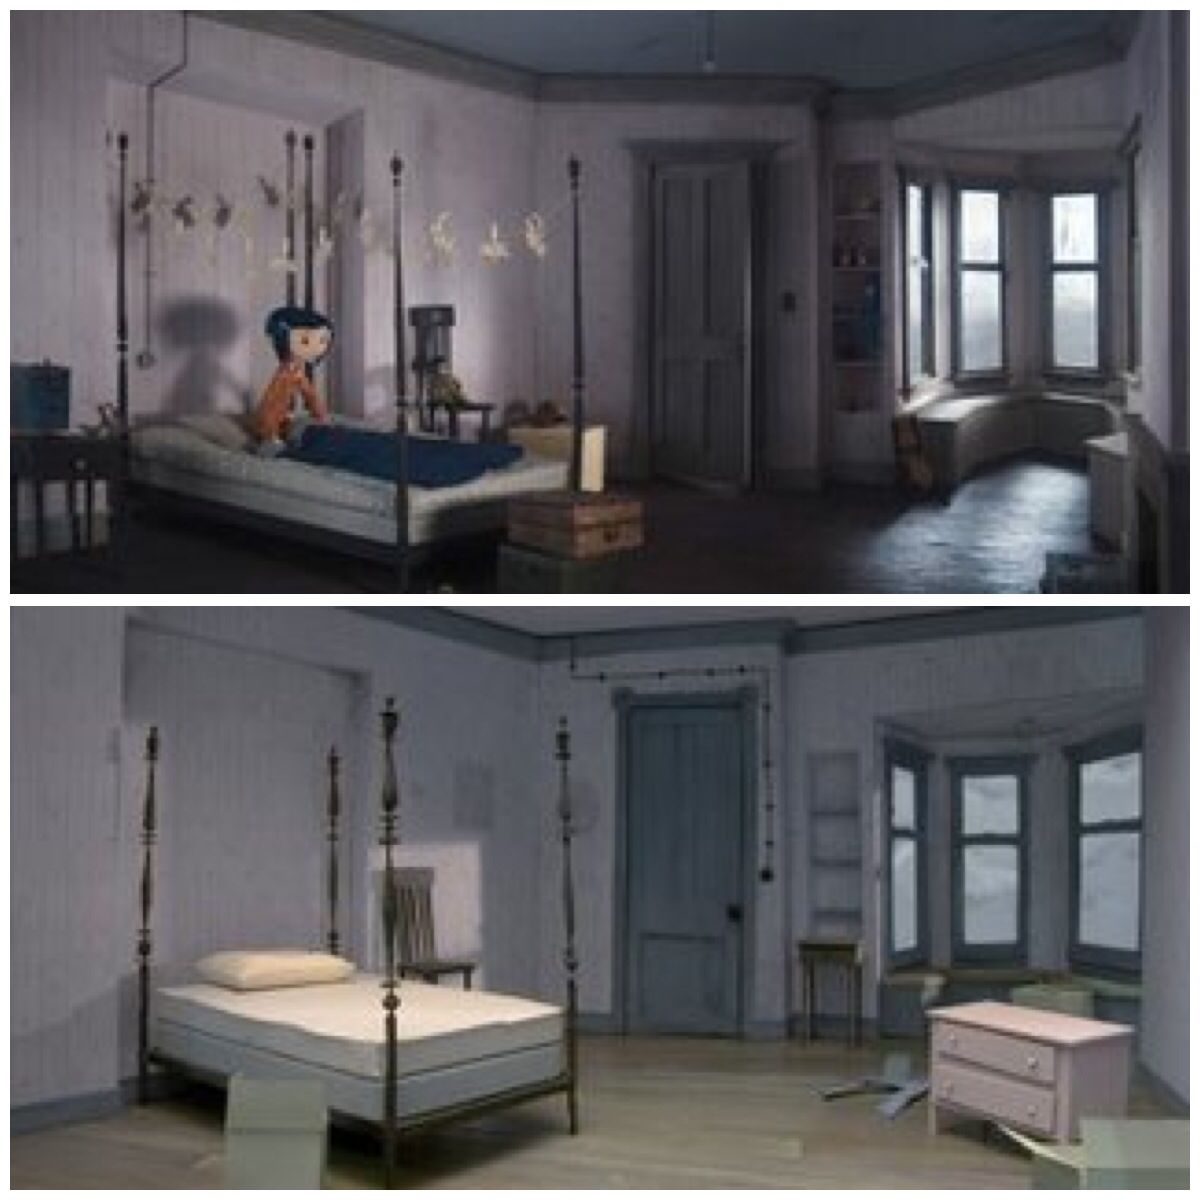 Coraline Bedroom Cold Coraline Aesthetic Coraline Jones Coraline